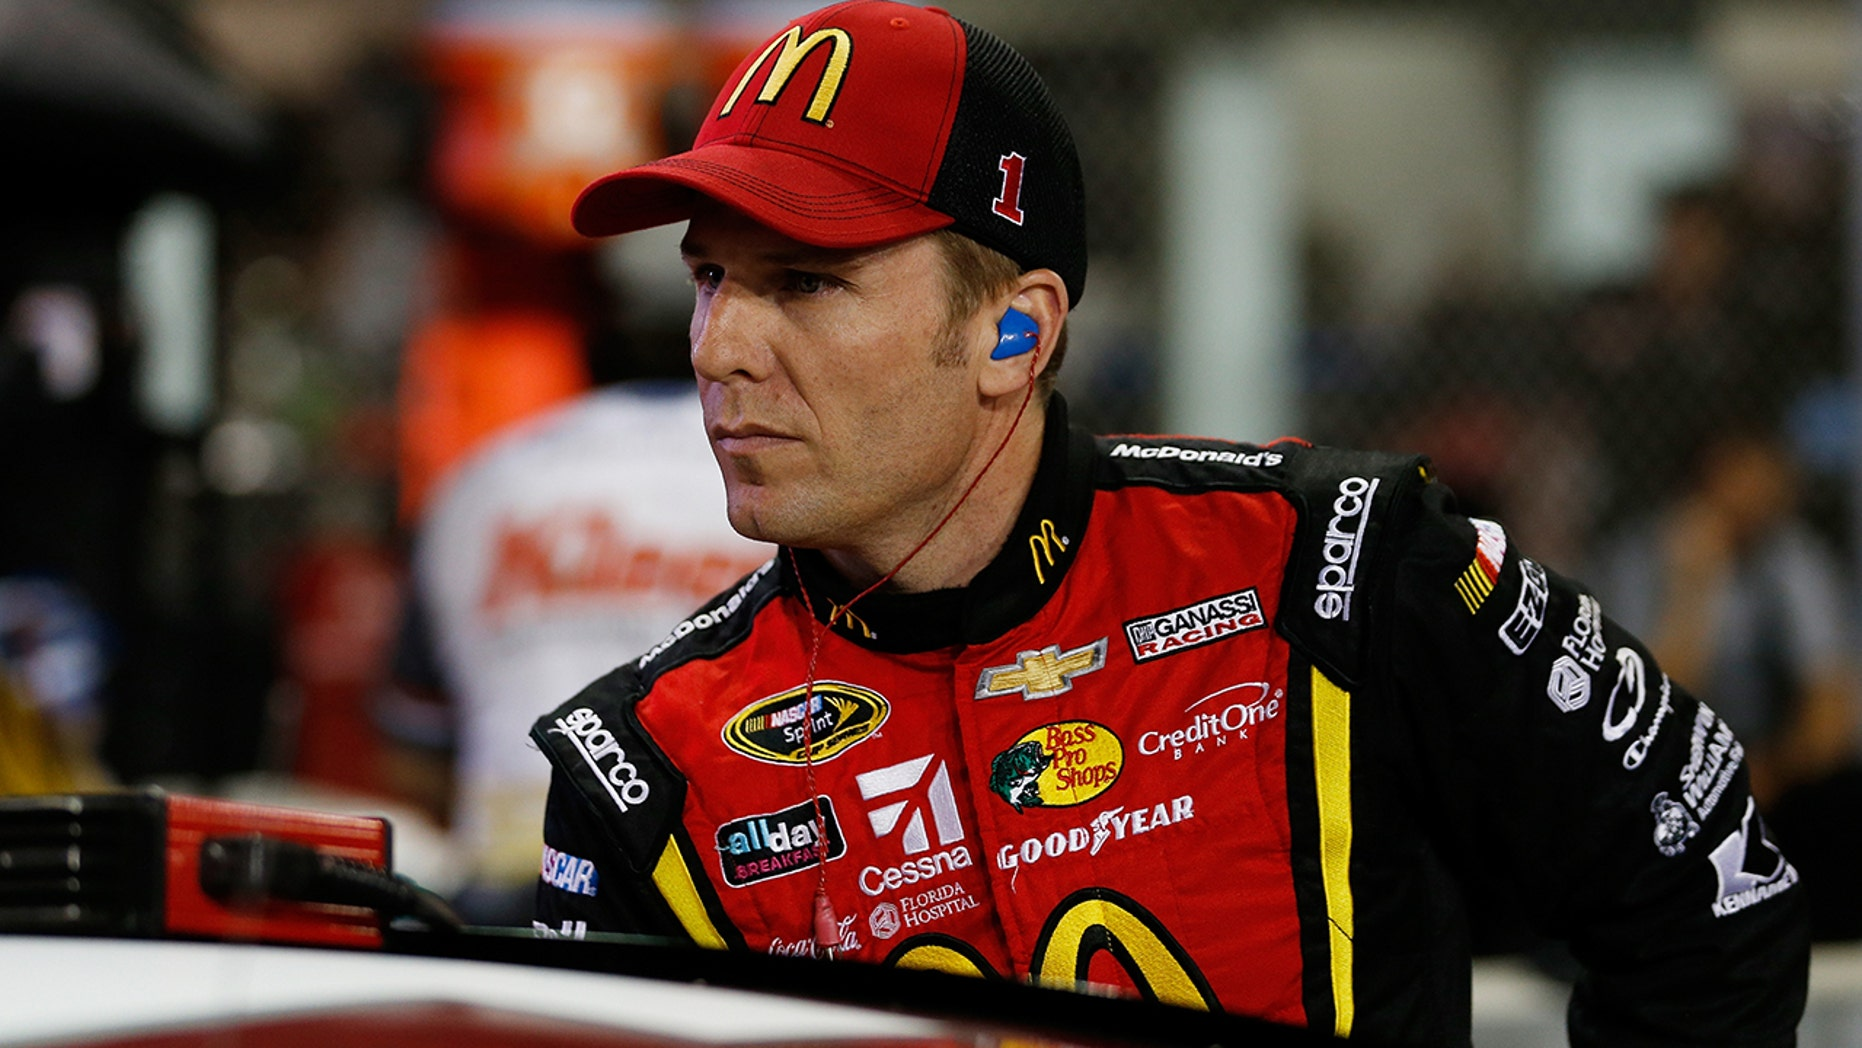 McMurray wrapped up the 2018 season with an 18th place finish at Homestead-Miami Speedway